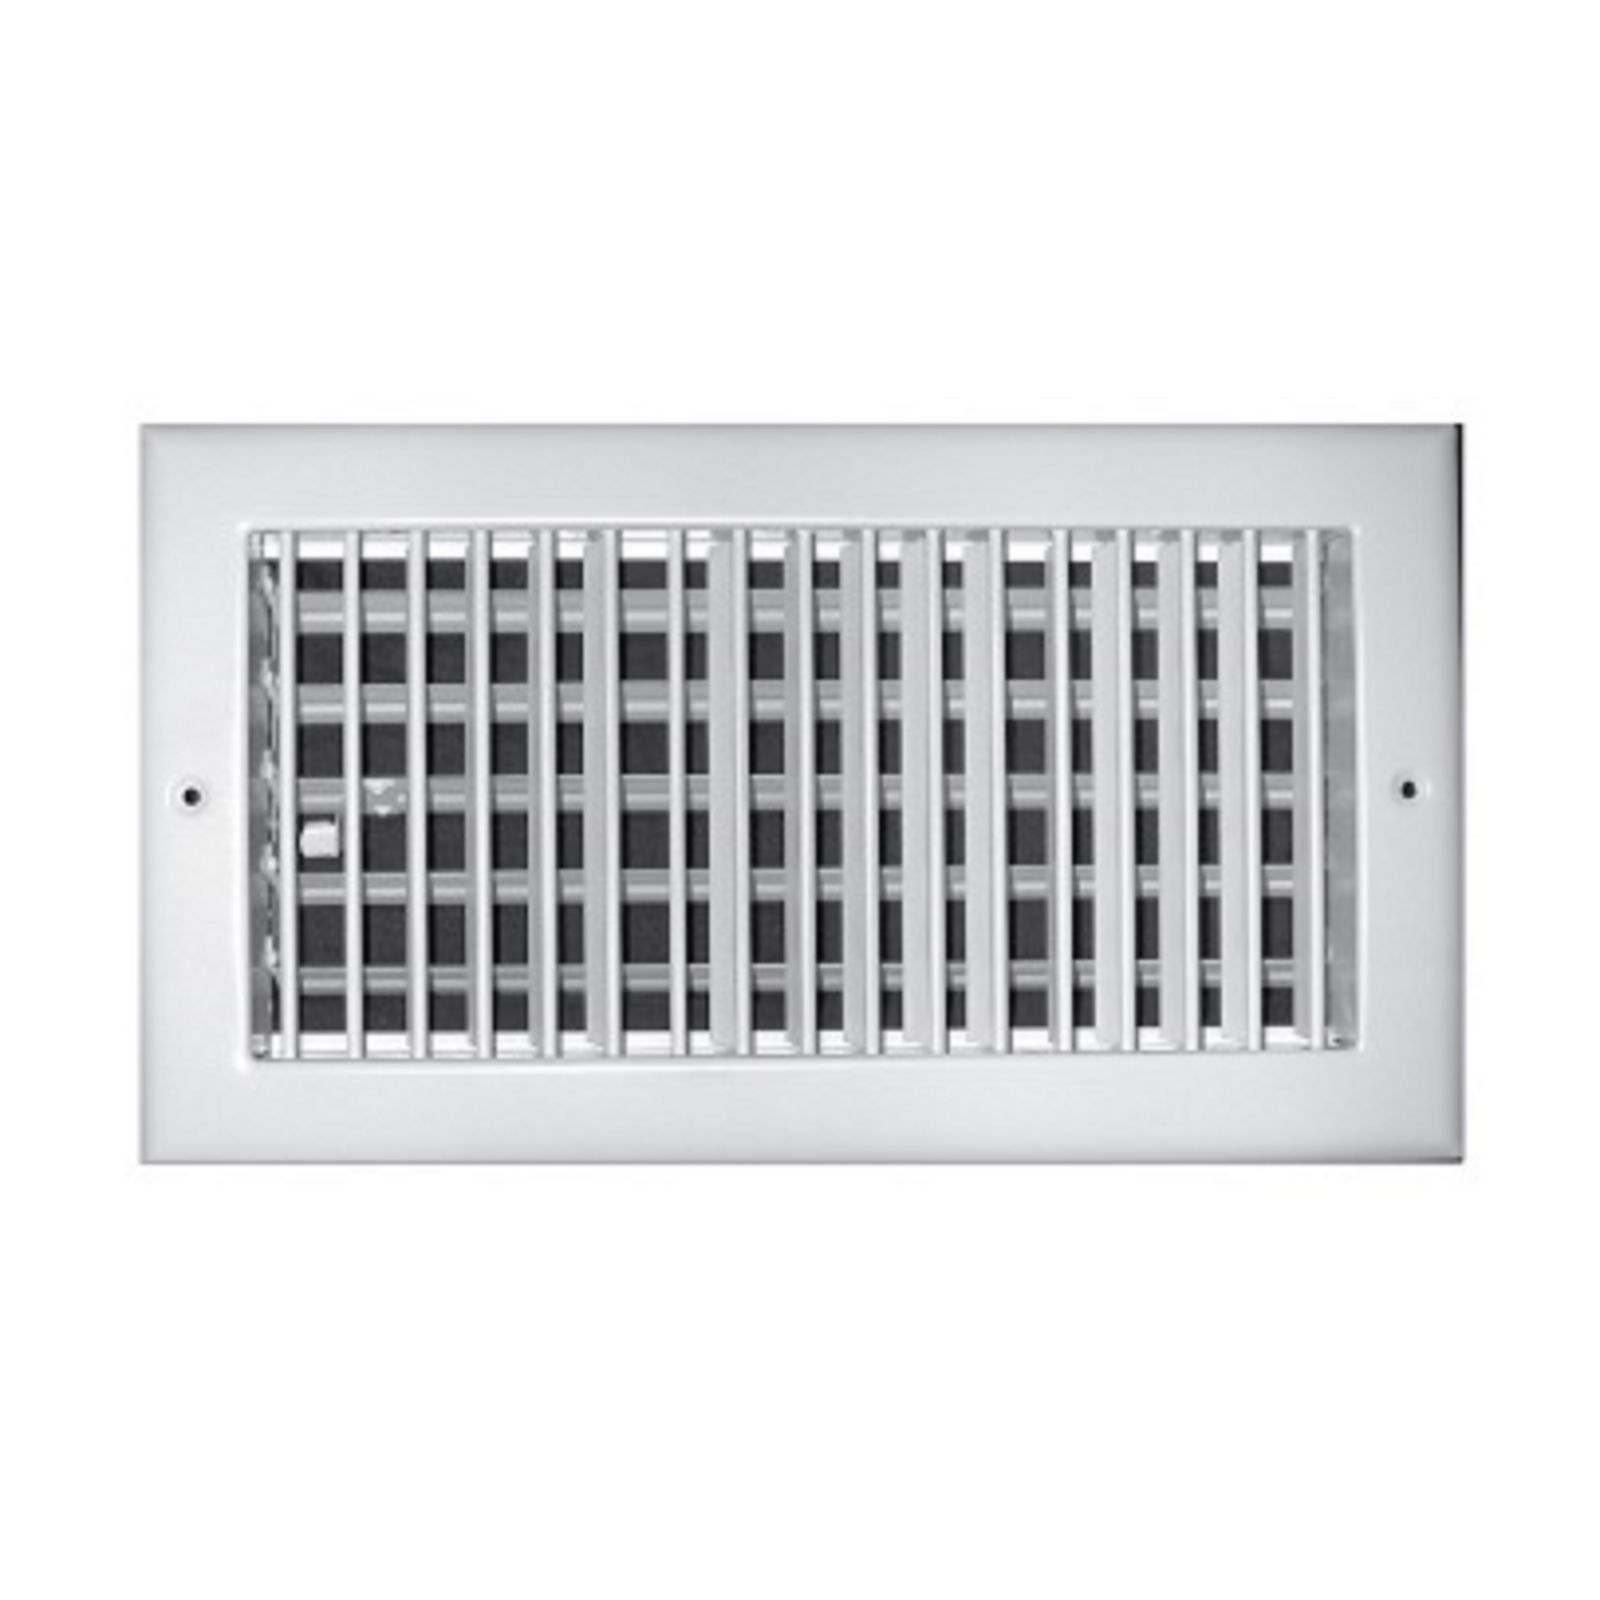 "TRUaire A210VM 12X12 - Aluminum Adjustable 1-Way Wall/Ceiling Register, Vertical, Multi Shutter Damper, White, 12"" X 12"""